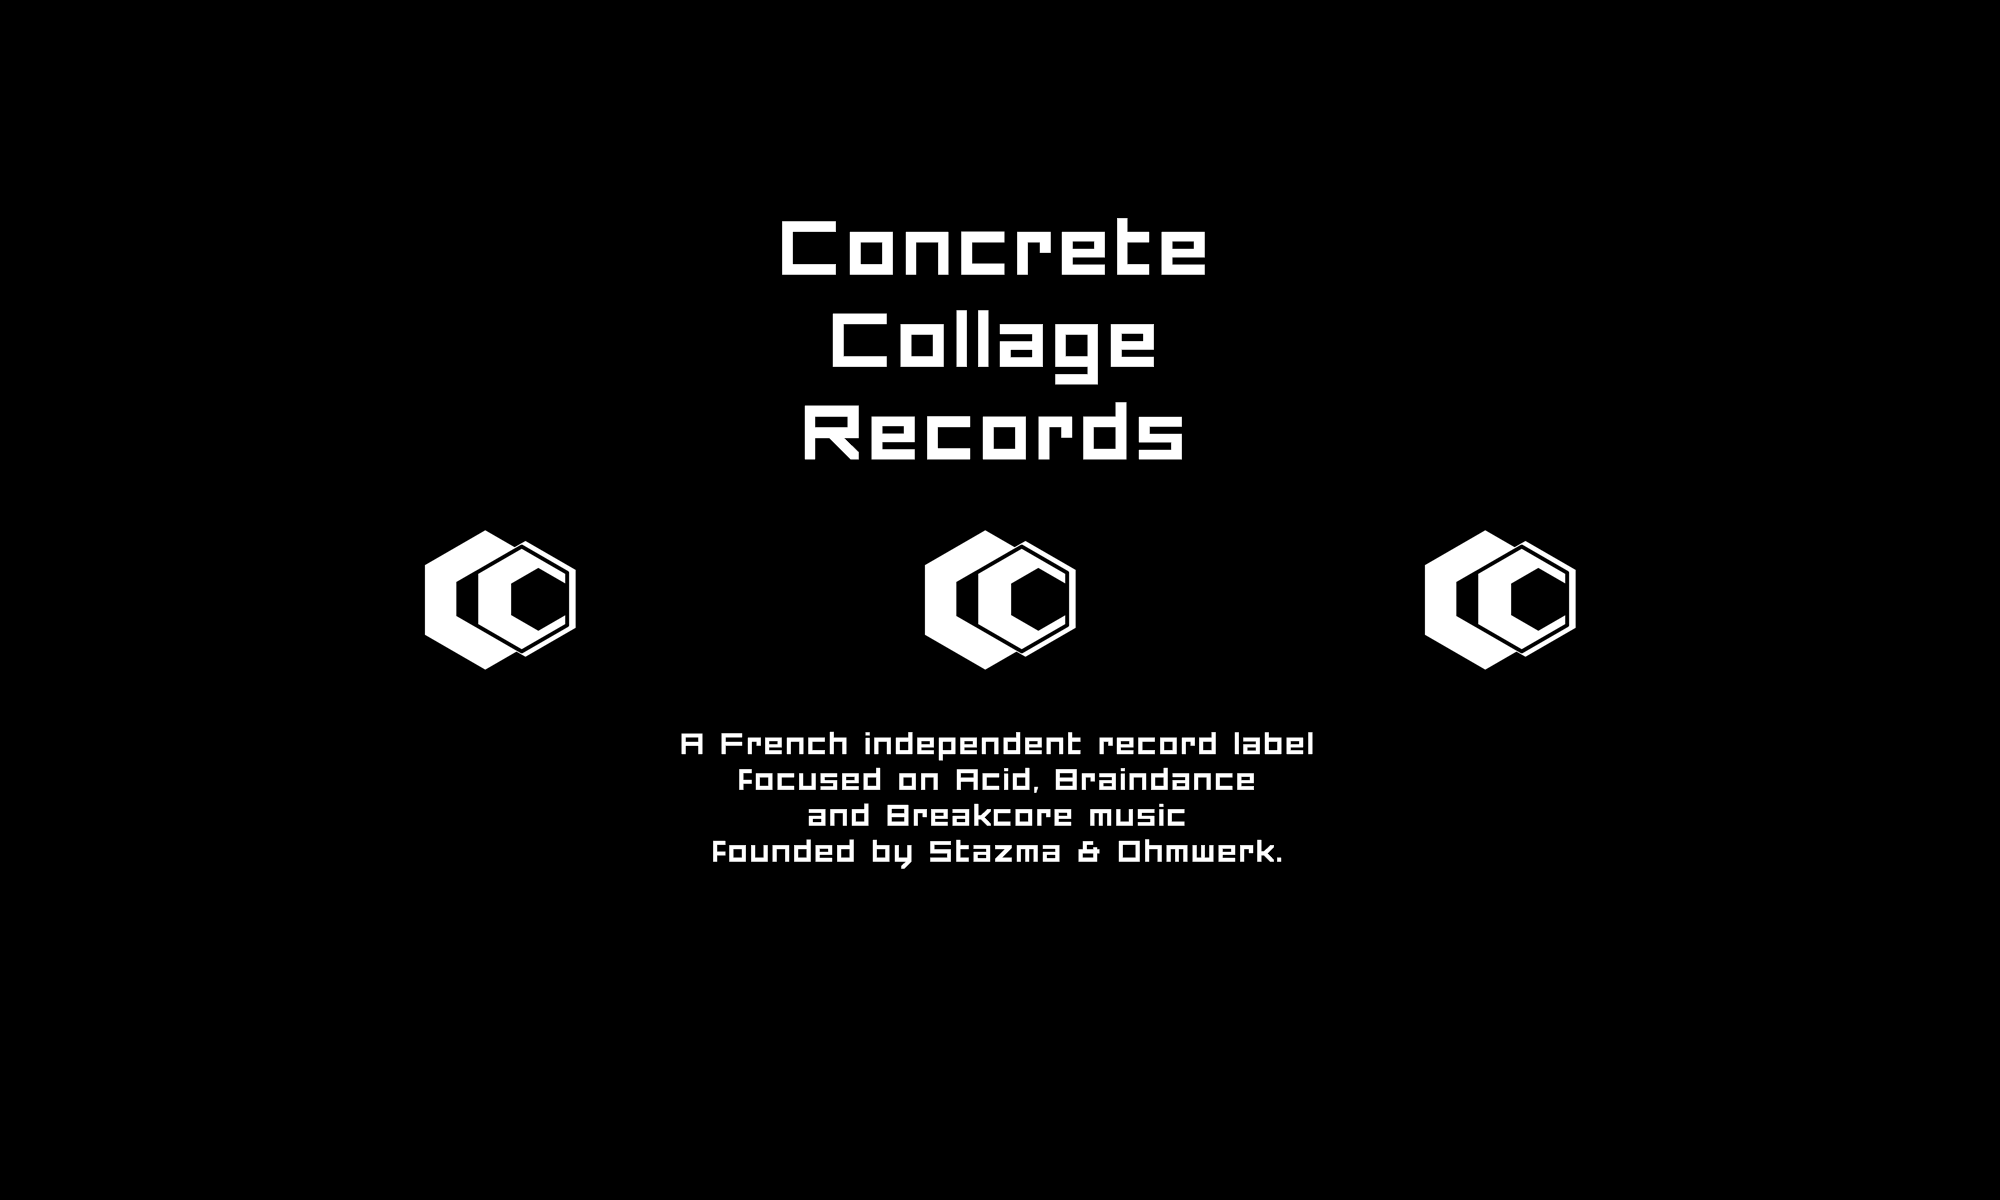 Concrete Collage Records